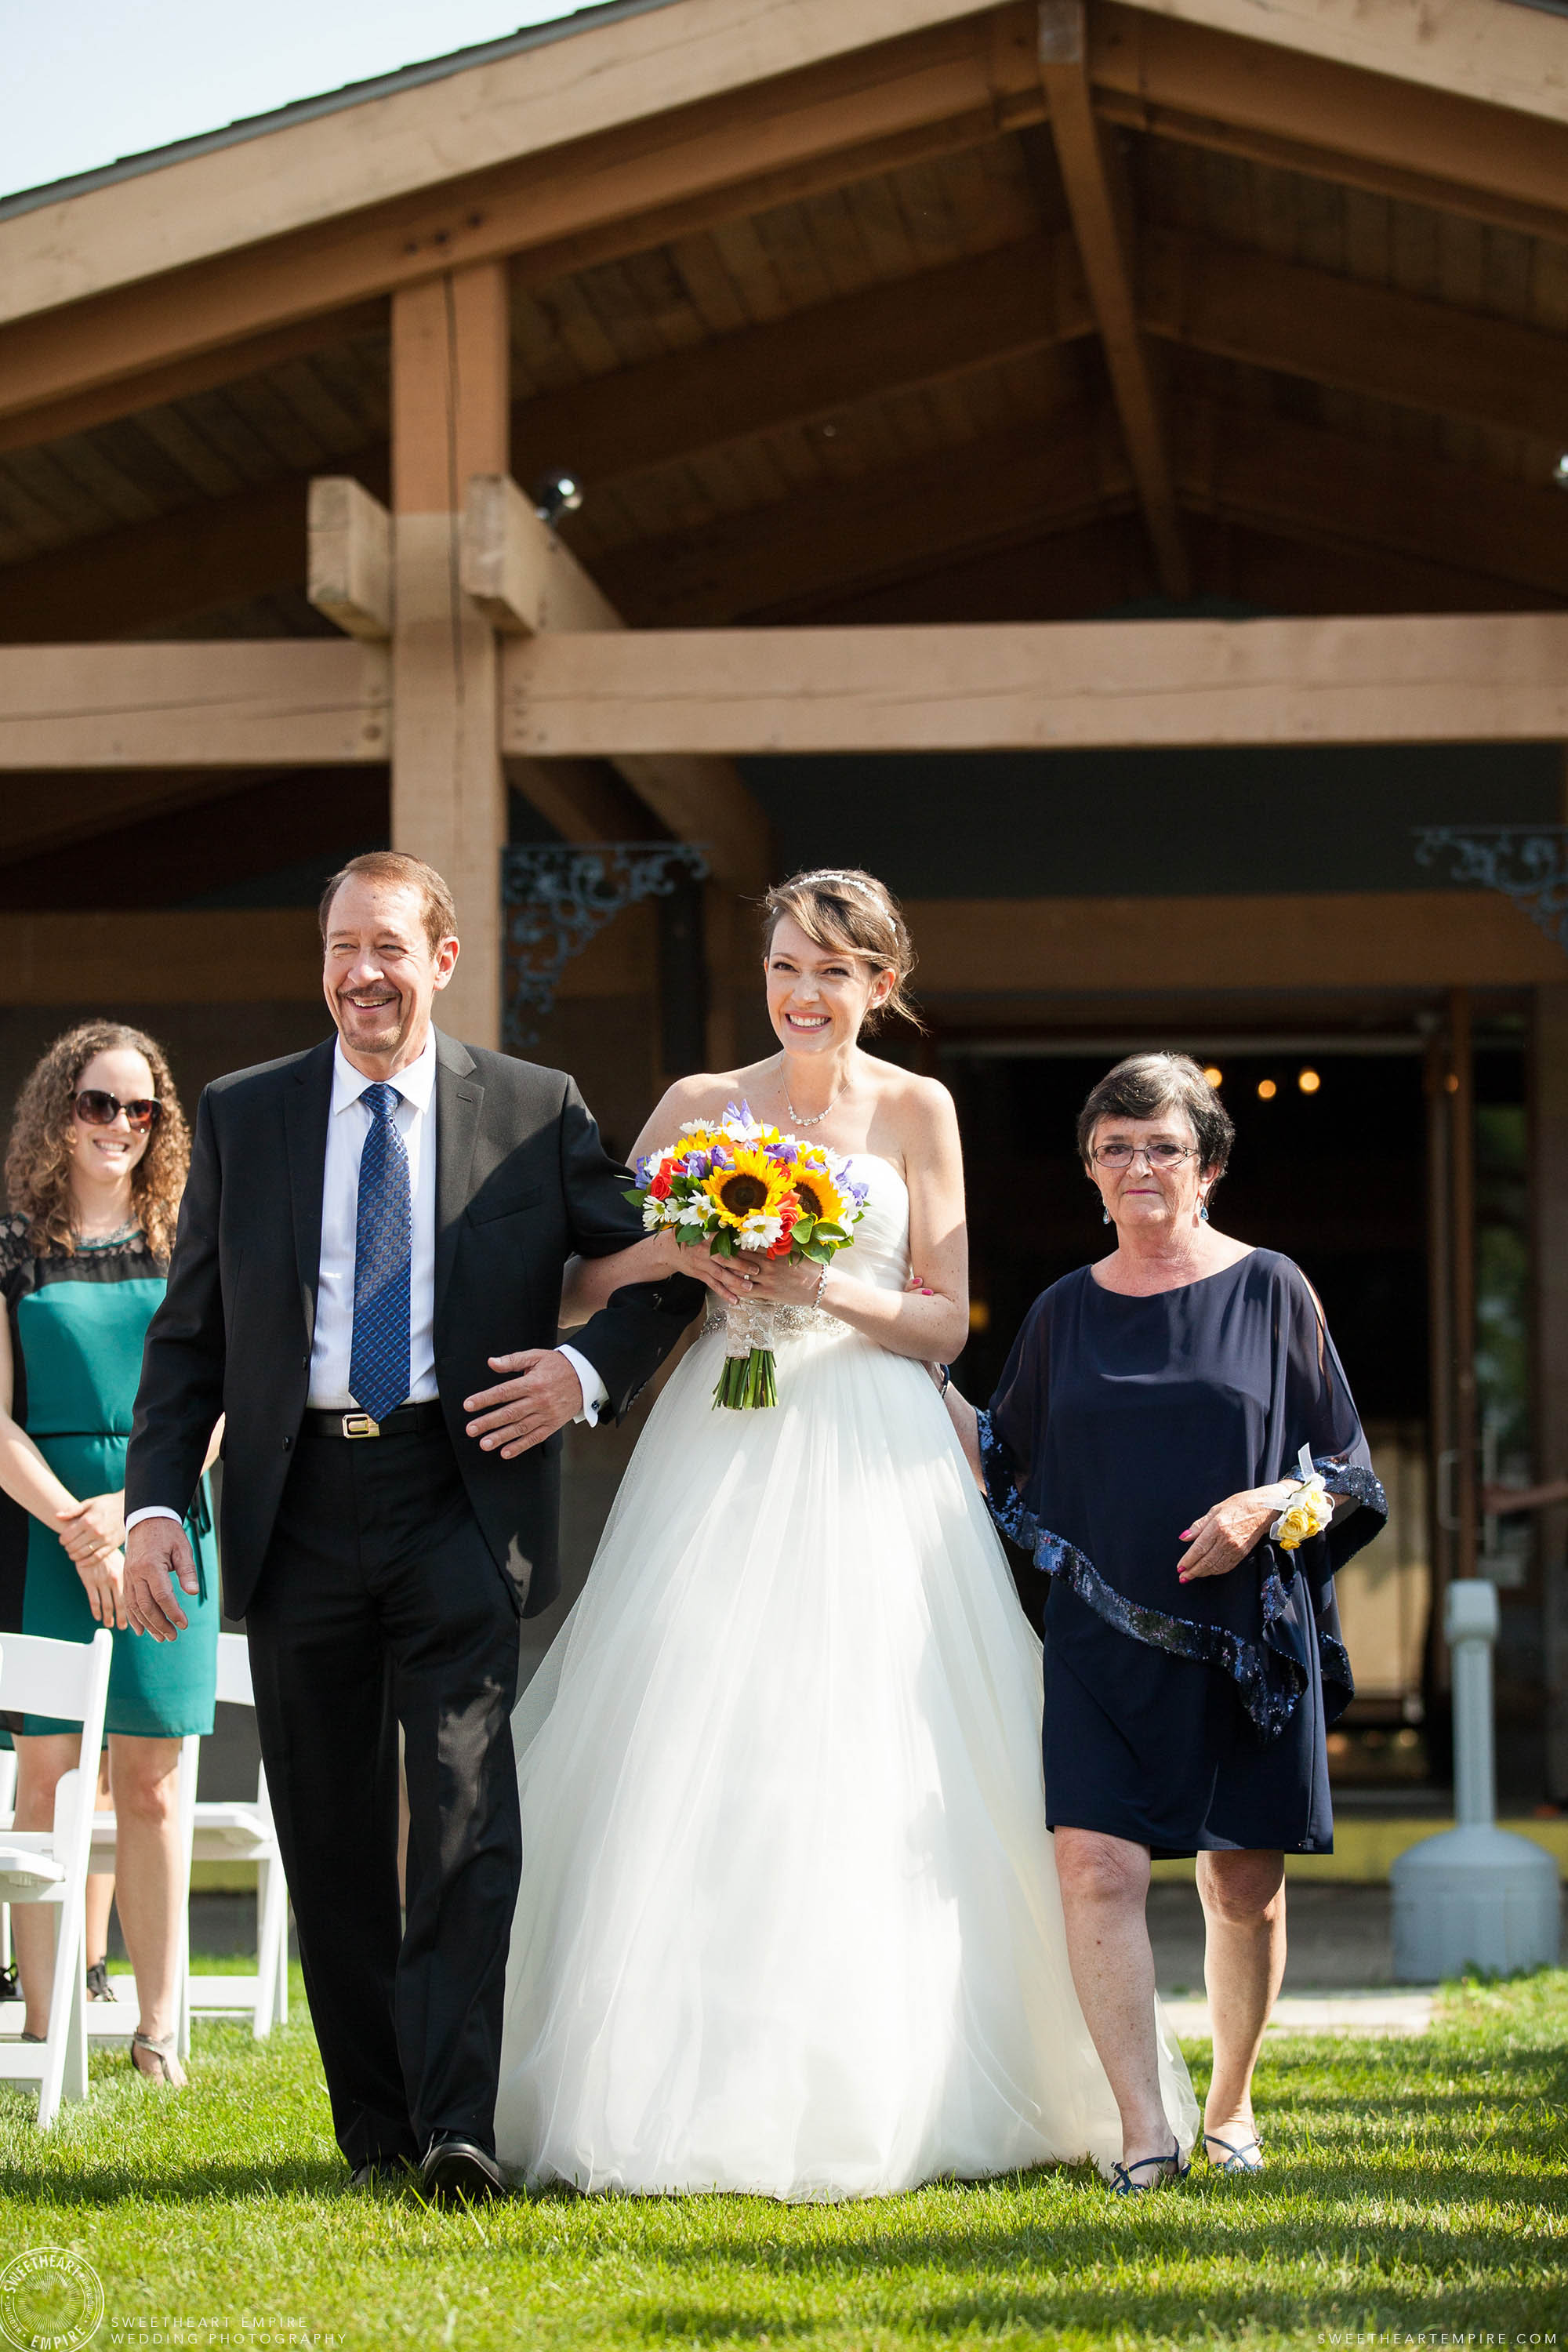 Bride bursting with excitement as she walks down the aisle at her unplugged wedding at Rockway Vineyards.